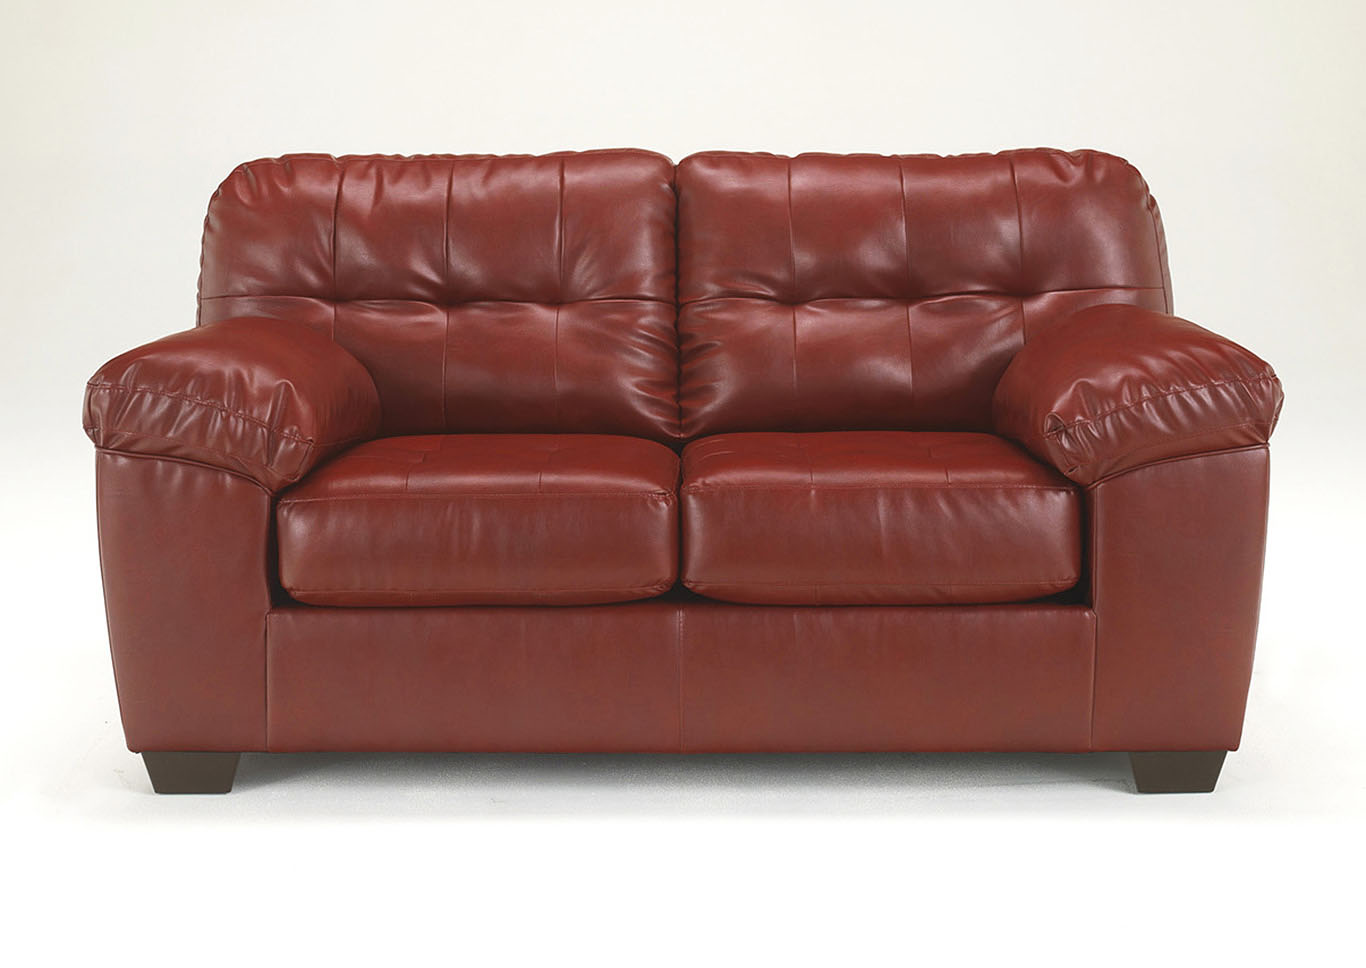 Alliston DuraBlend Salsa Loveseat,ABF Signature Design by Ashley